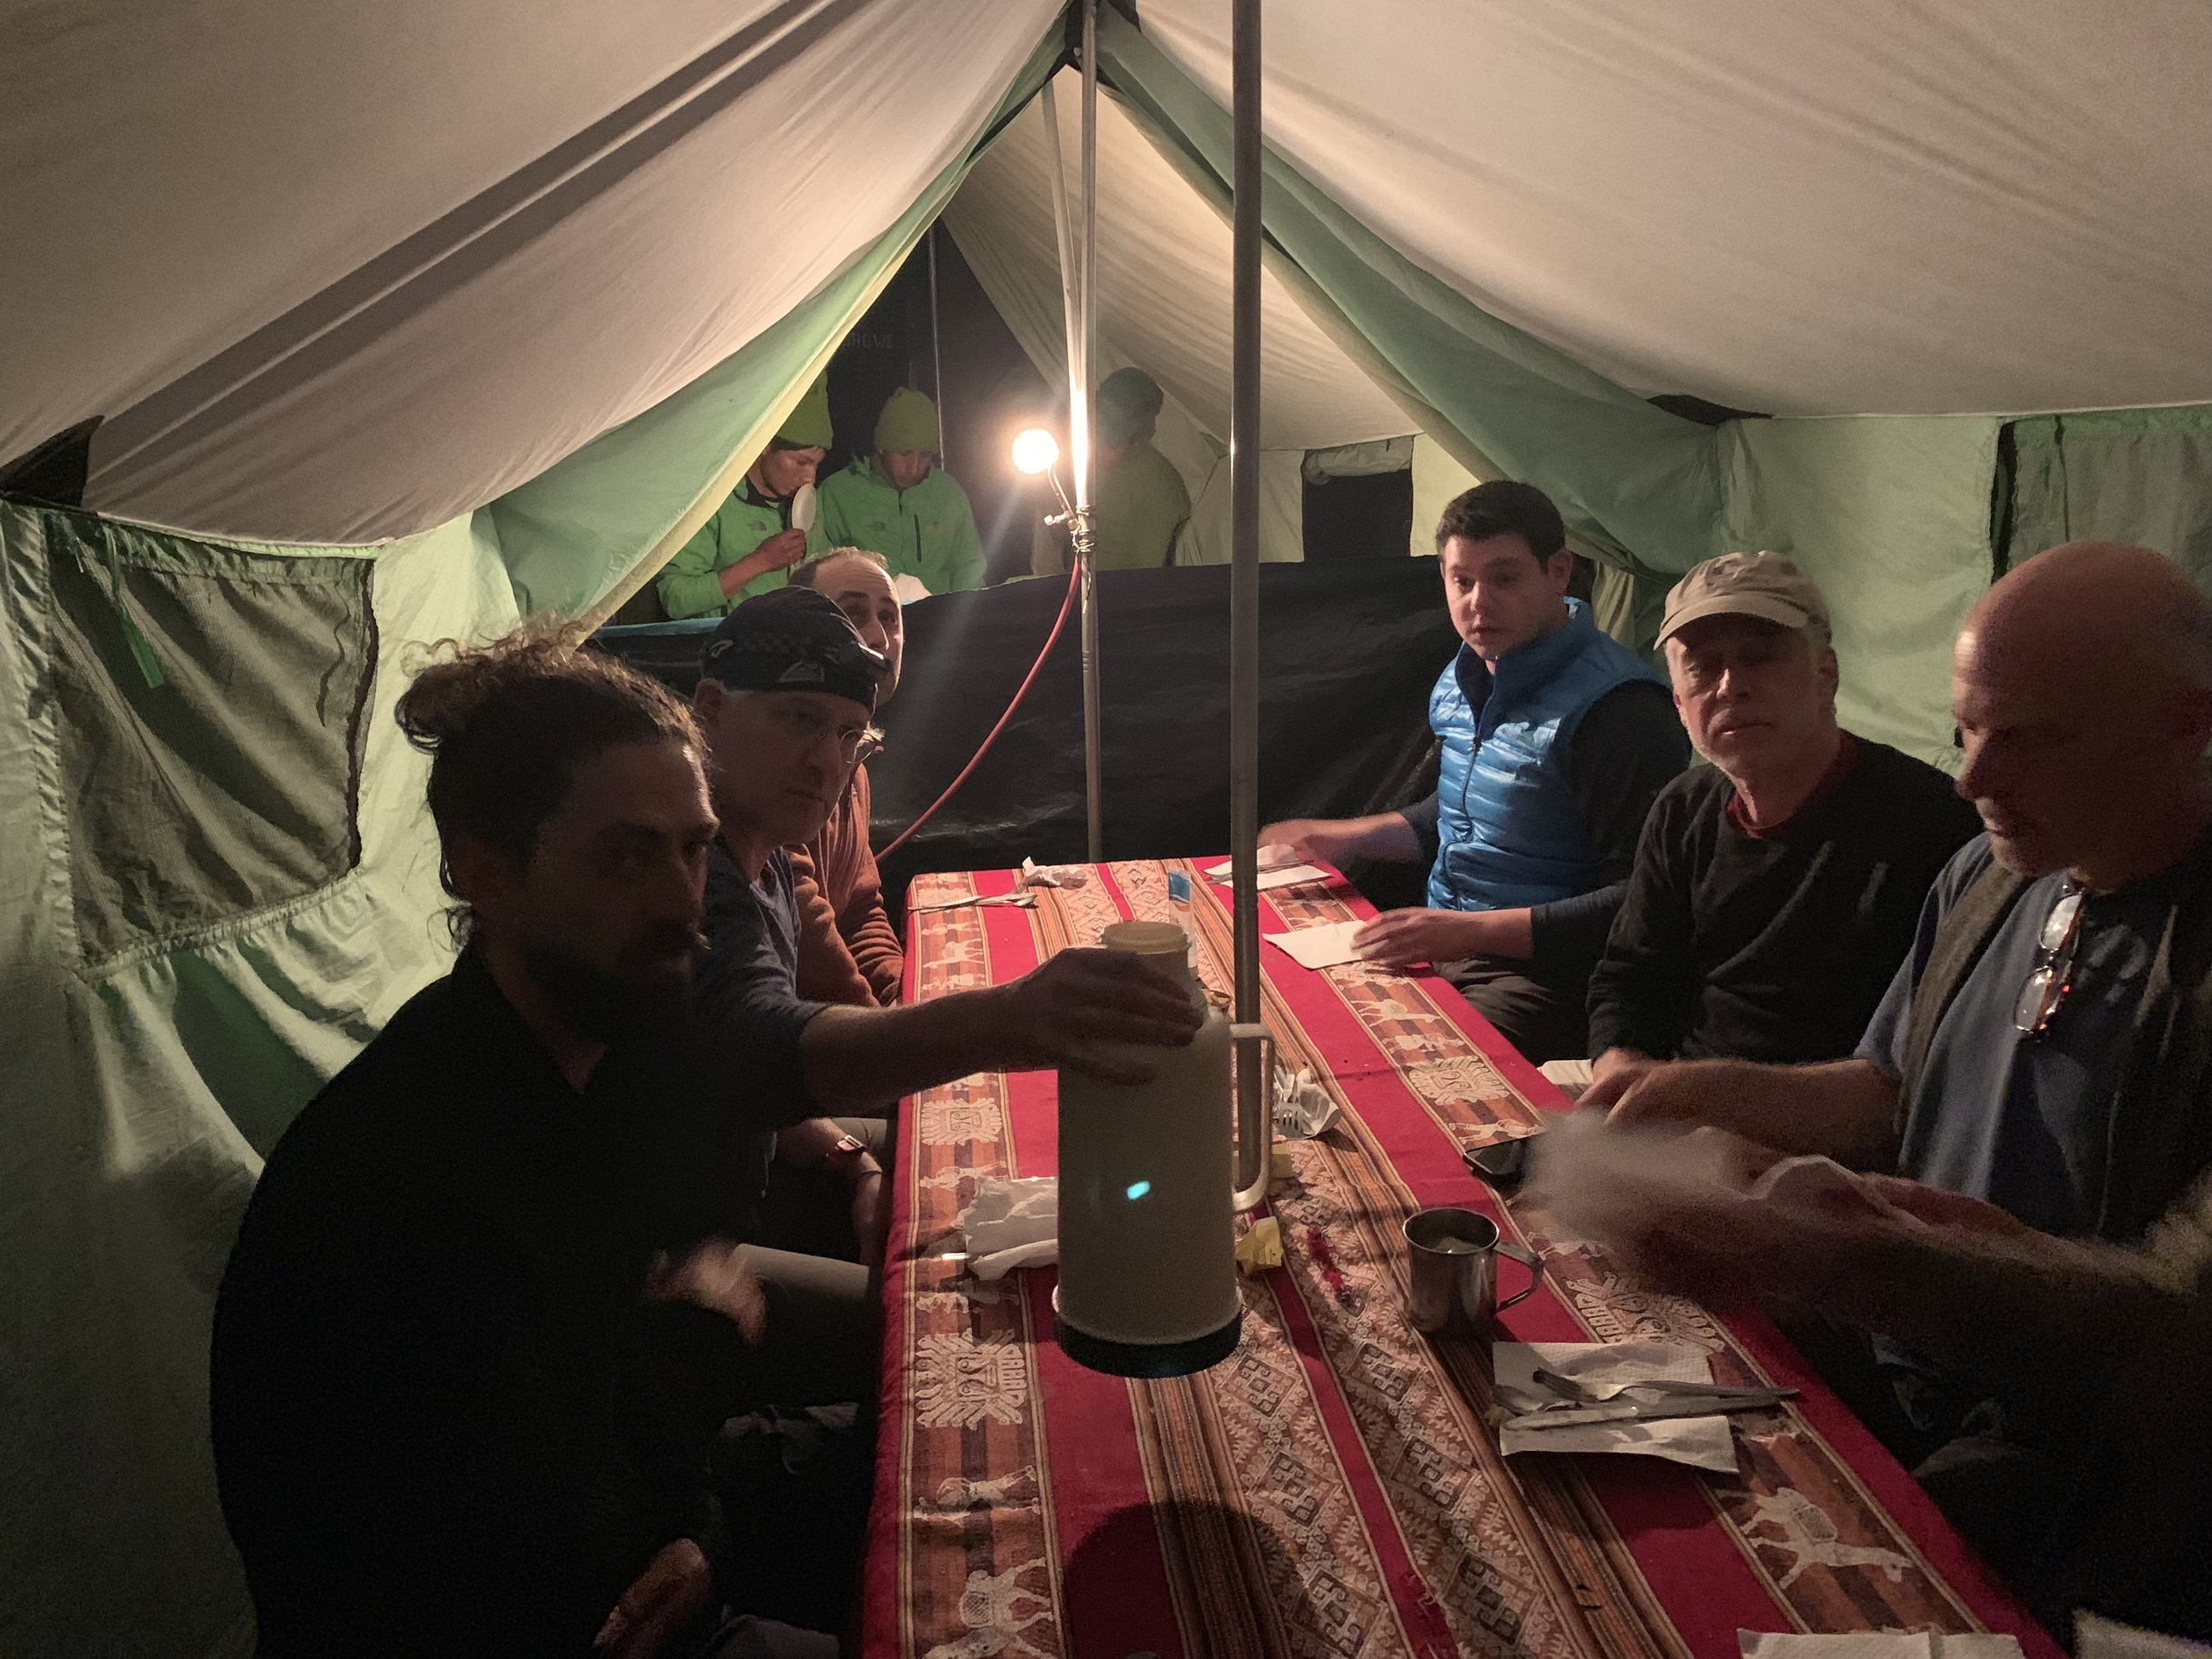 Our final dinner on the trail